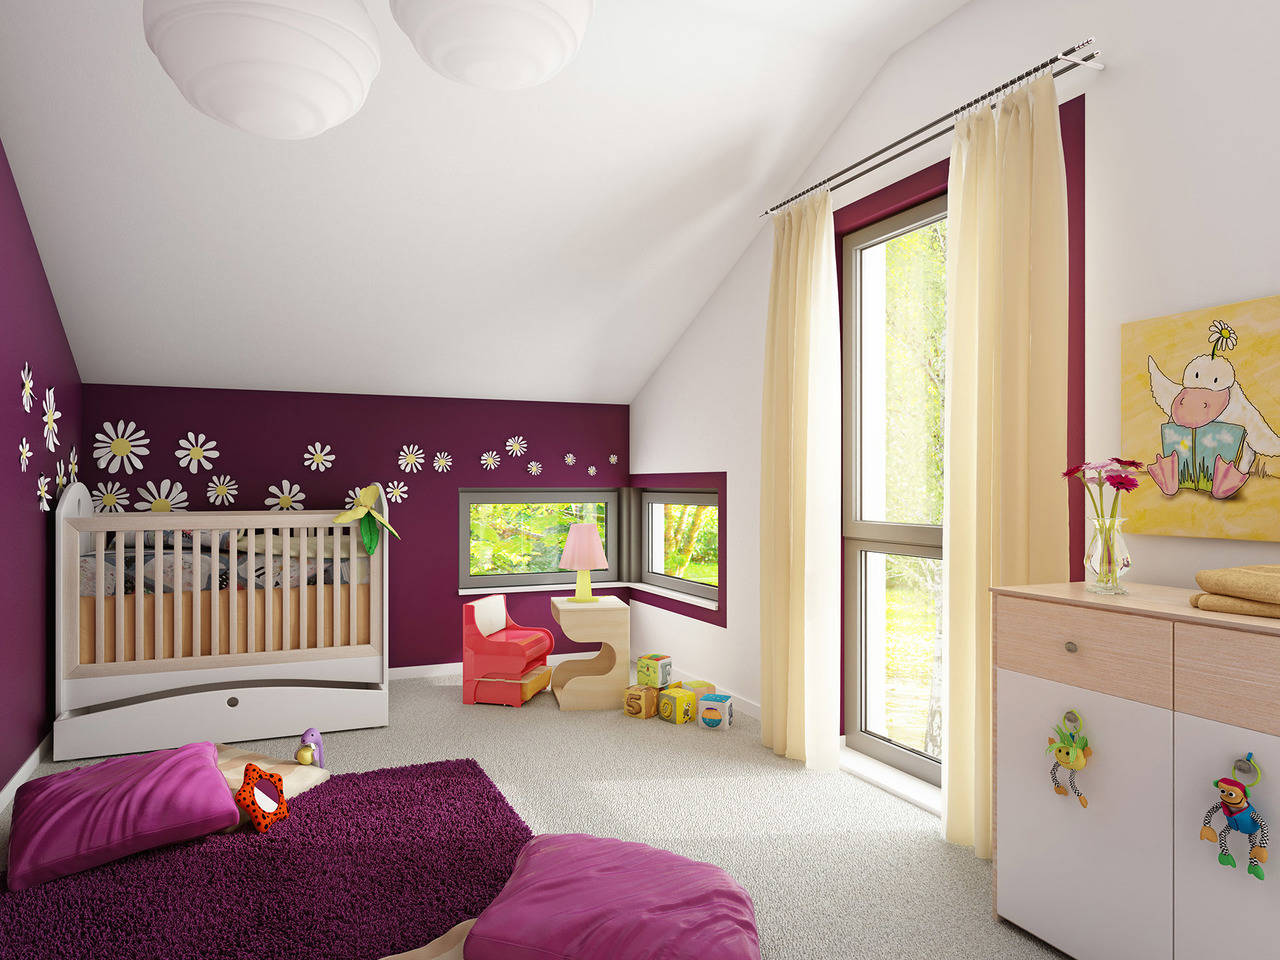 Haus SOLUTION 204 V4 Kinderzimmer von Living Haus